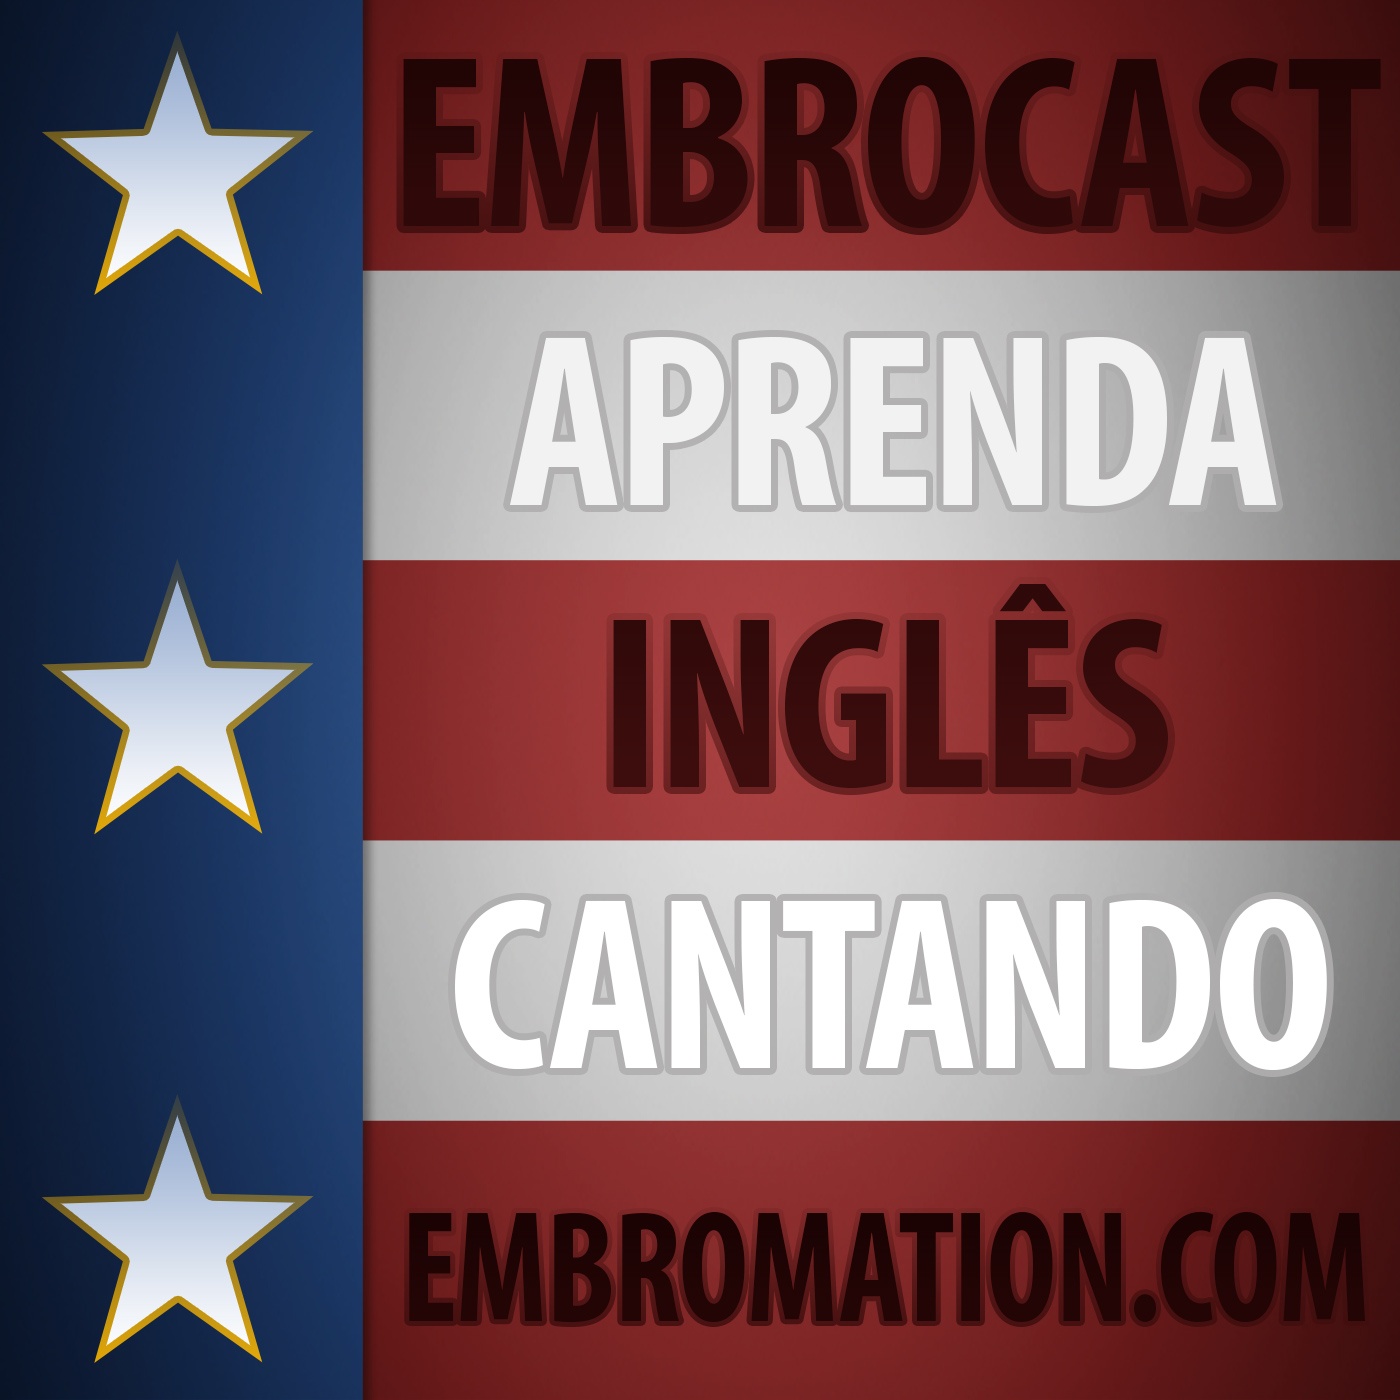 Embrocast – Embromation